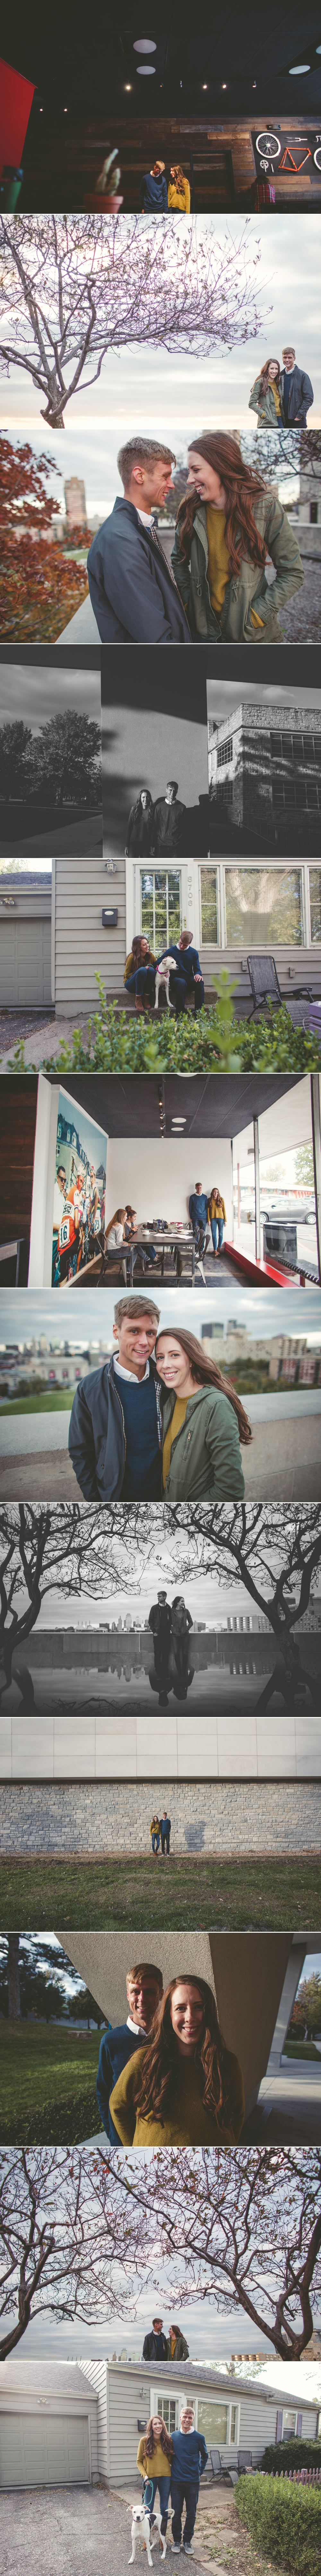 jason_domingues_photography_best_kansas_city_photographer_kc_engagement_session_umkc_liberty_memorial_second_best_coffee_waldo.JPG